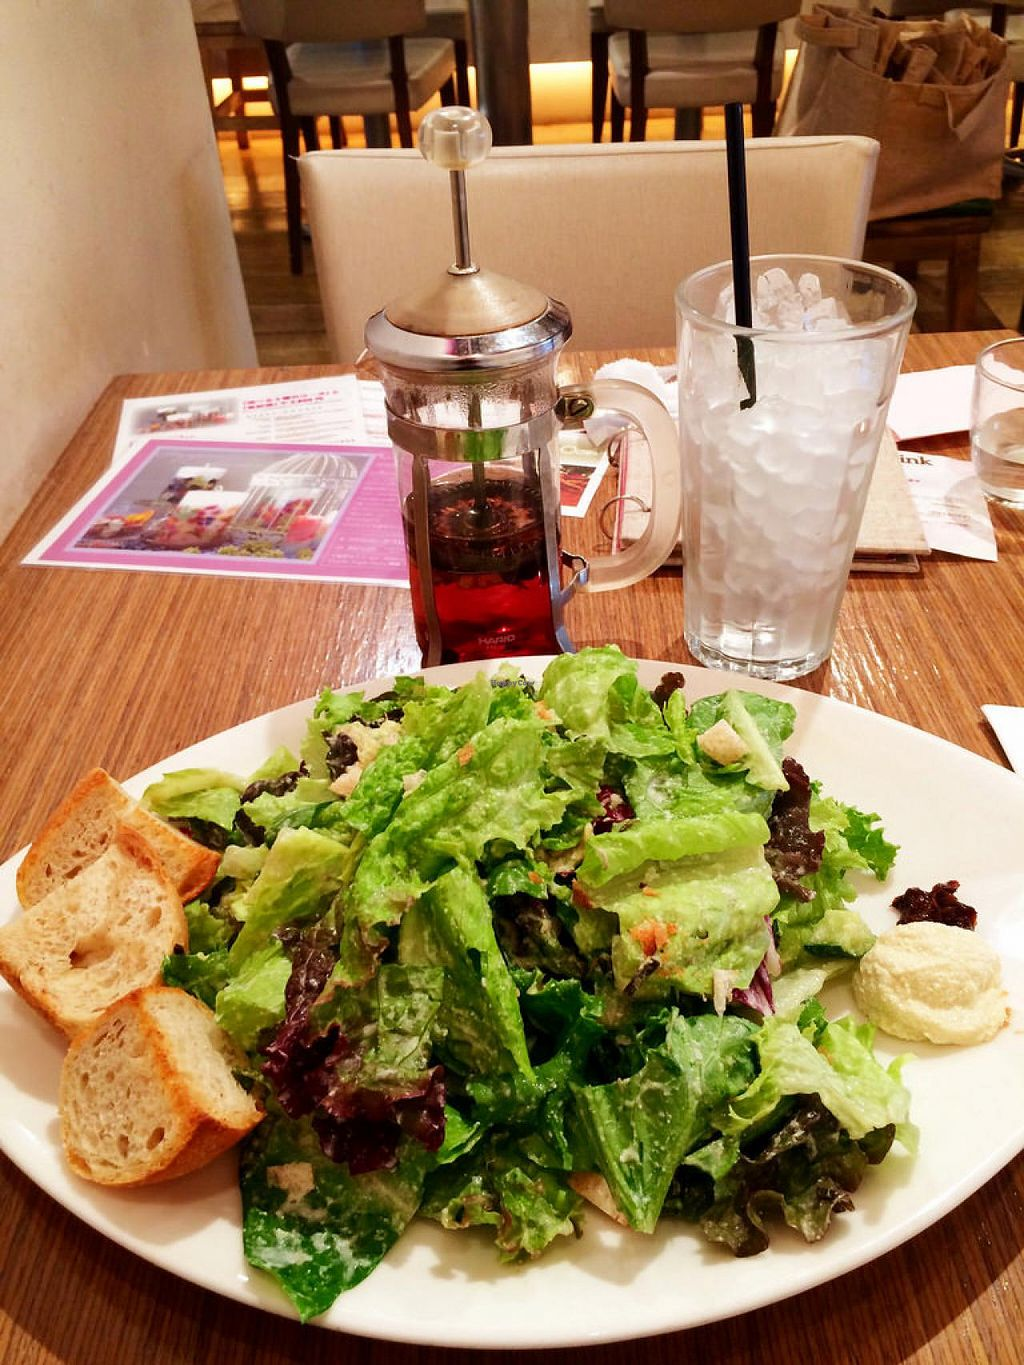 """Photo of Bio Cafe  by <a href=""""/members/profile/umebossy"""">umebossy</a> <br/>Vegan Cesar salad and herbal tea <br/> May 18, 2015  - <a href='/contact/abuse/image/40751/102654'>Report</a>"""